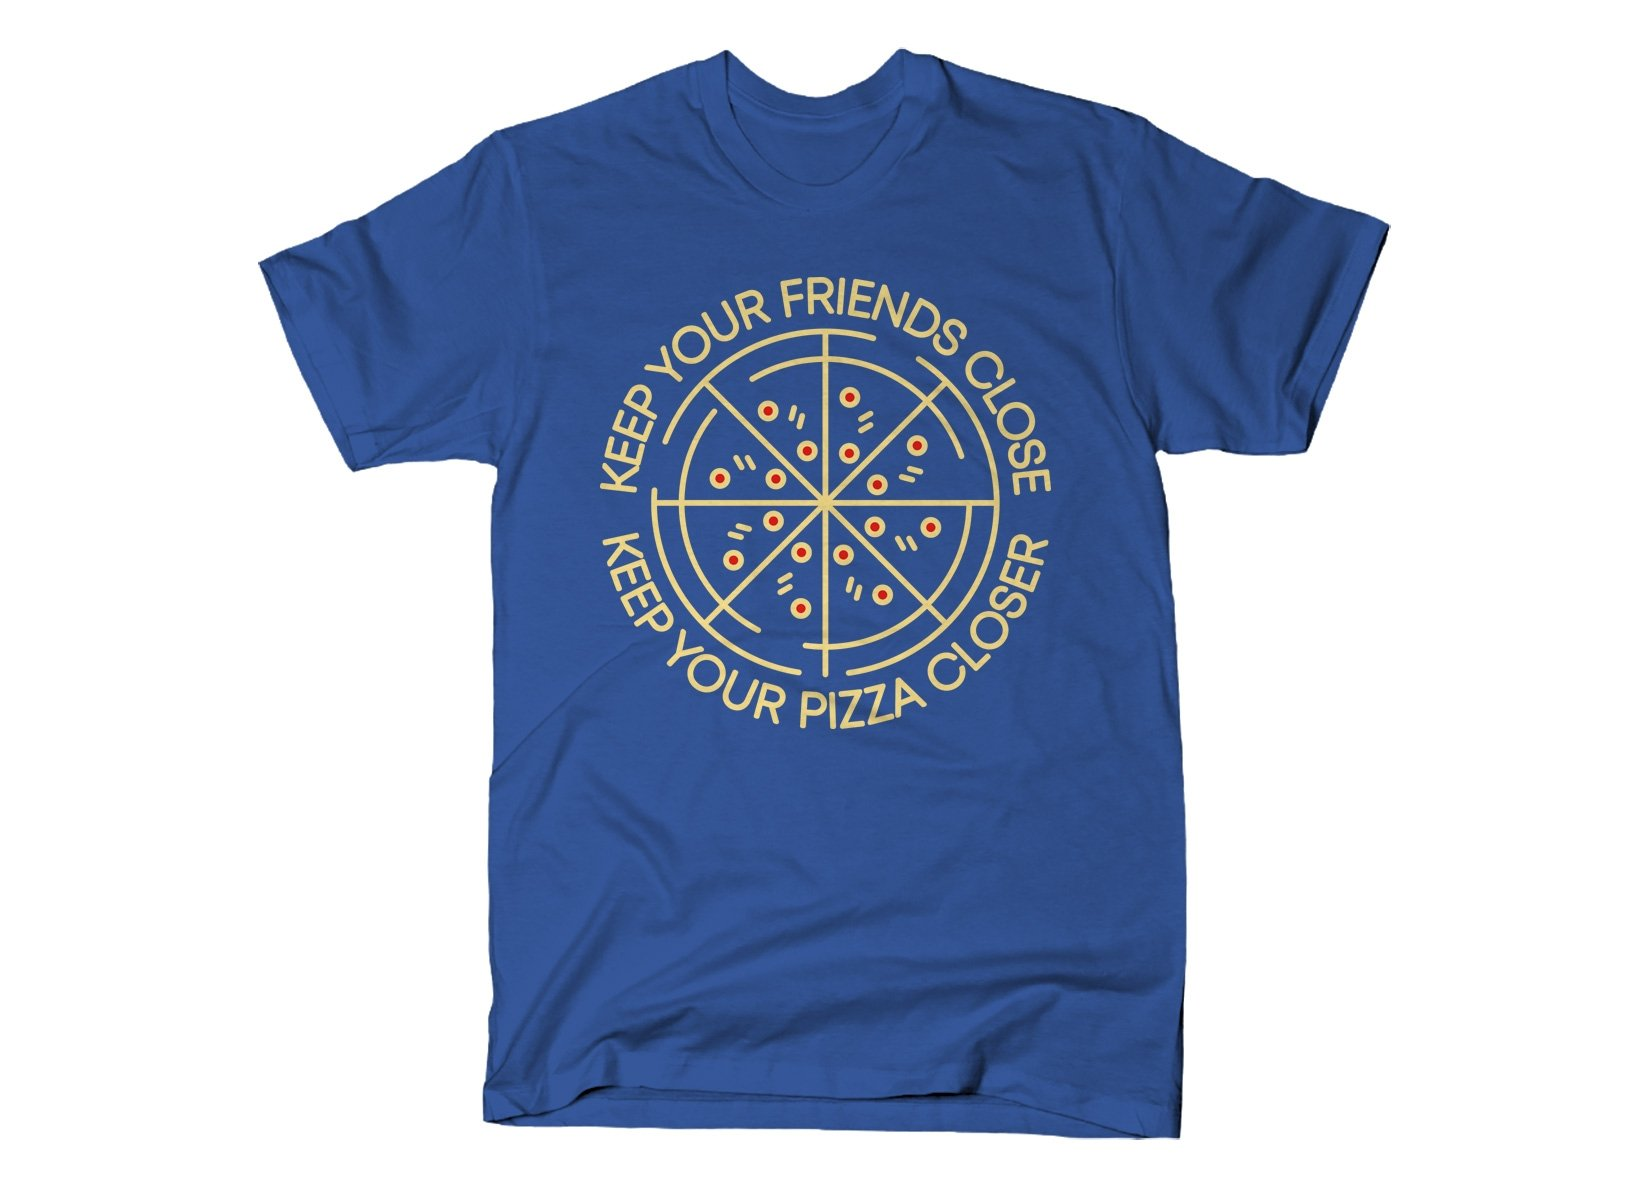 Keep Your Pizza Closer on Mens T-Shirt